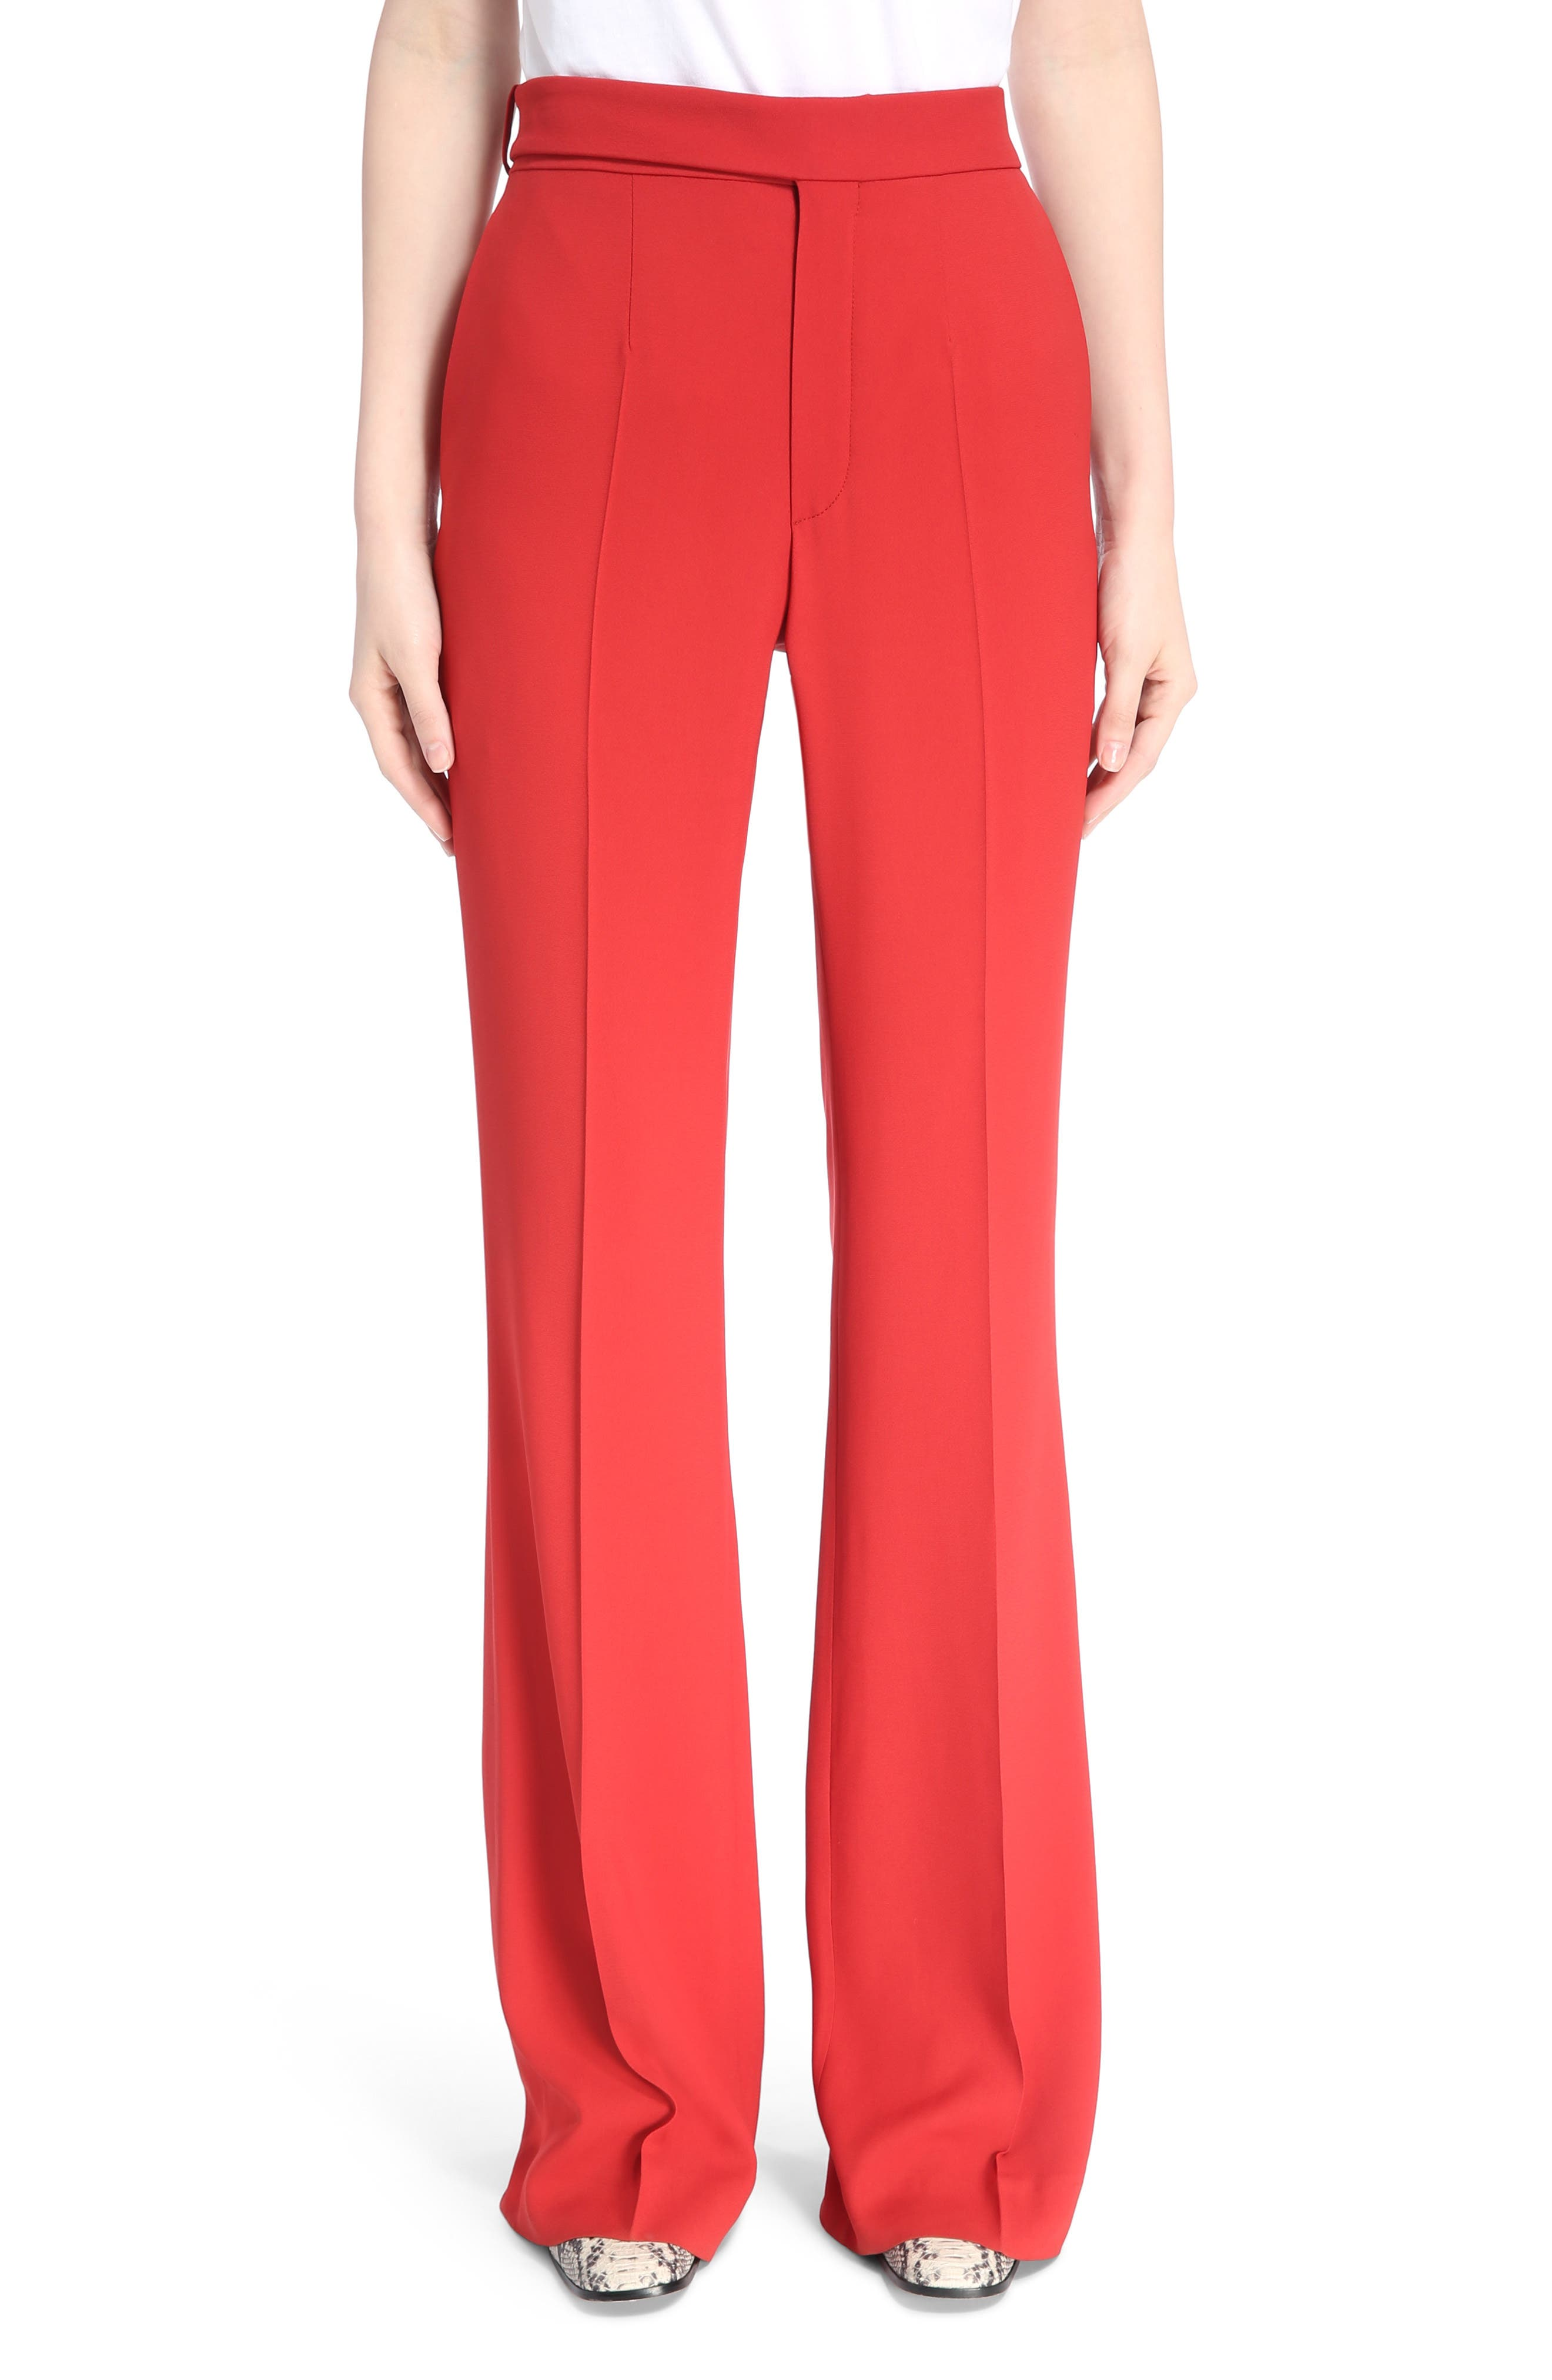 Cady Flare Suiting Pants,                         Main,                         color, Ginger Red